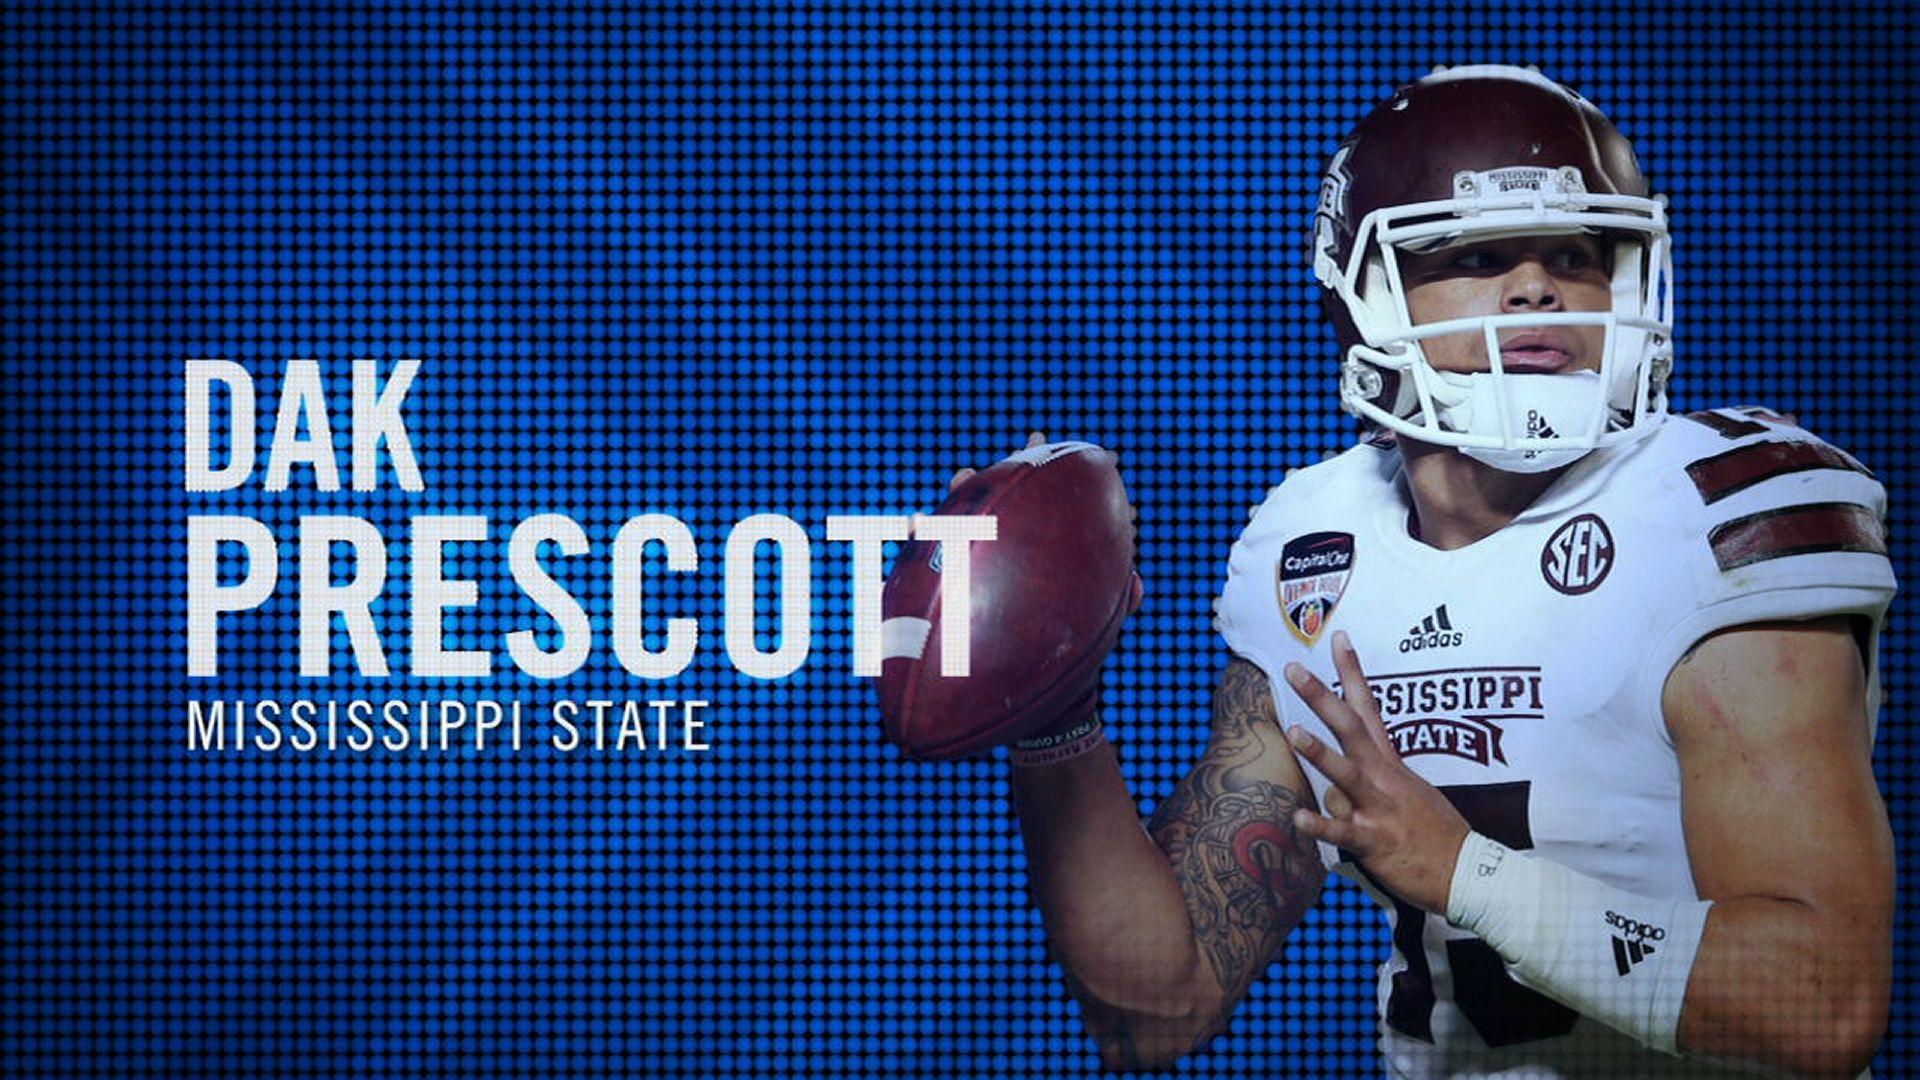 I am the SEC: Mississippi State's Dak Prescott